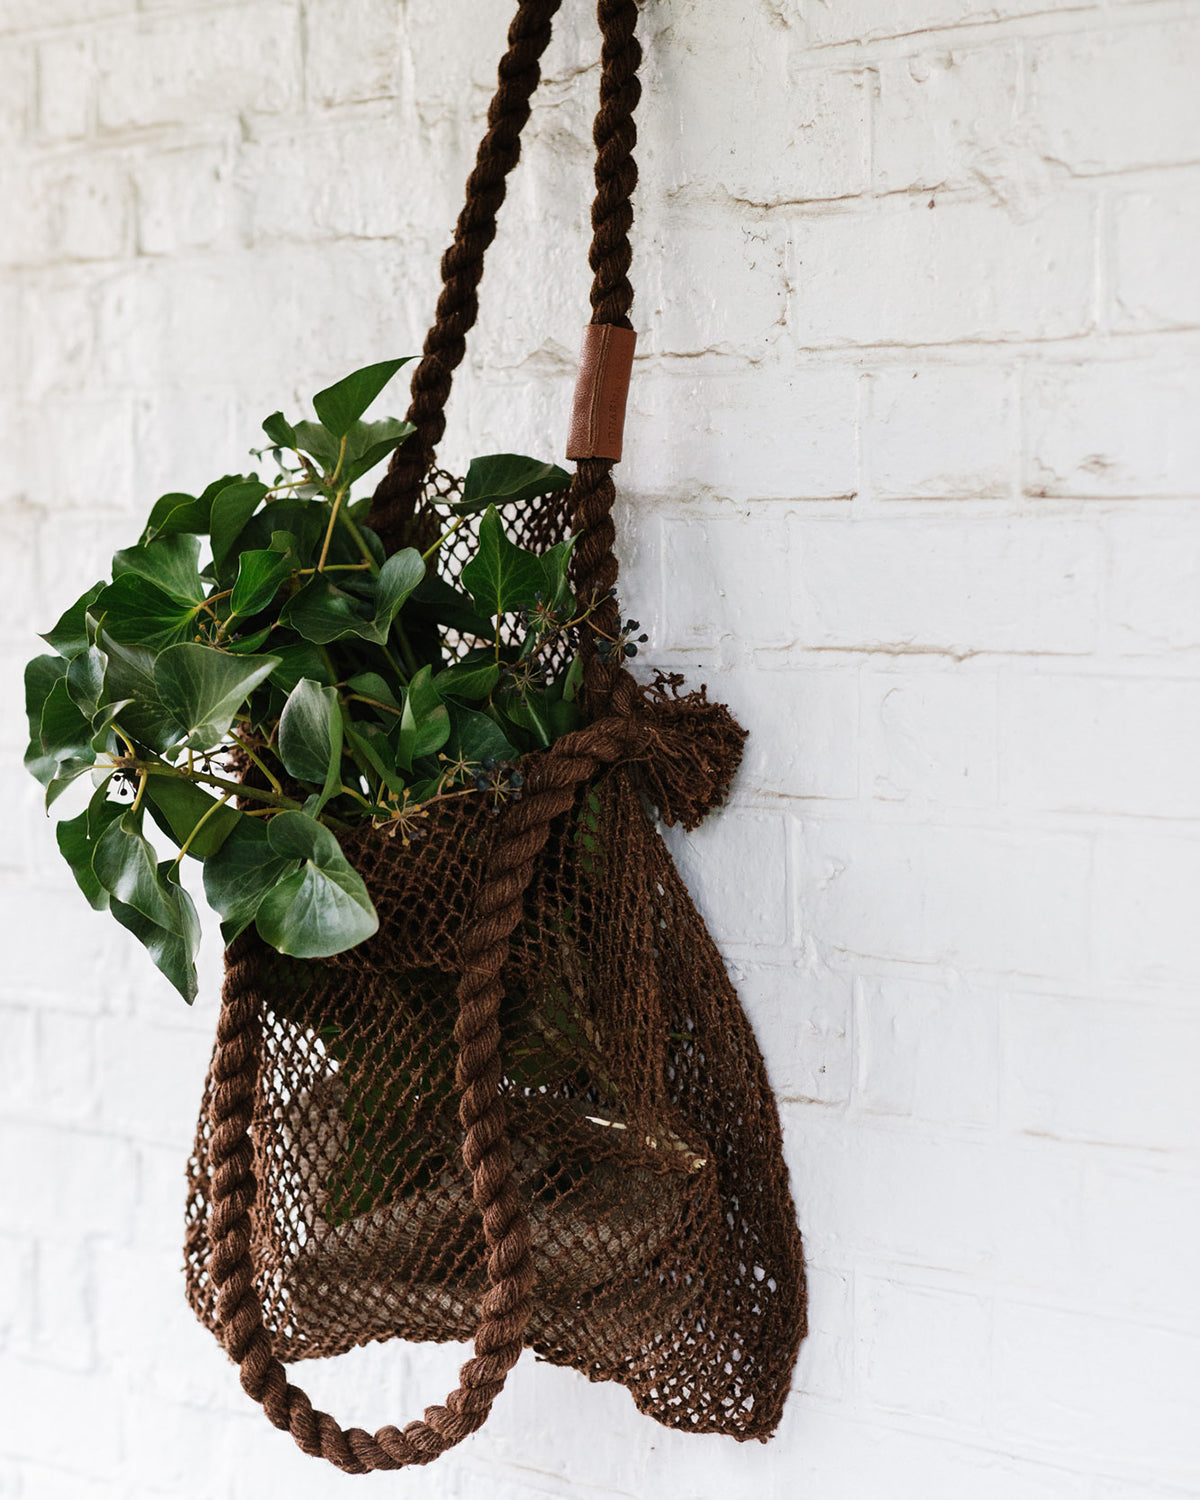 the dharma door hemp string bag acacia